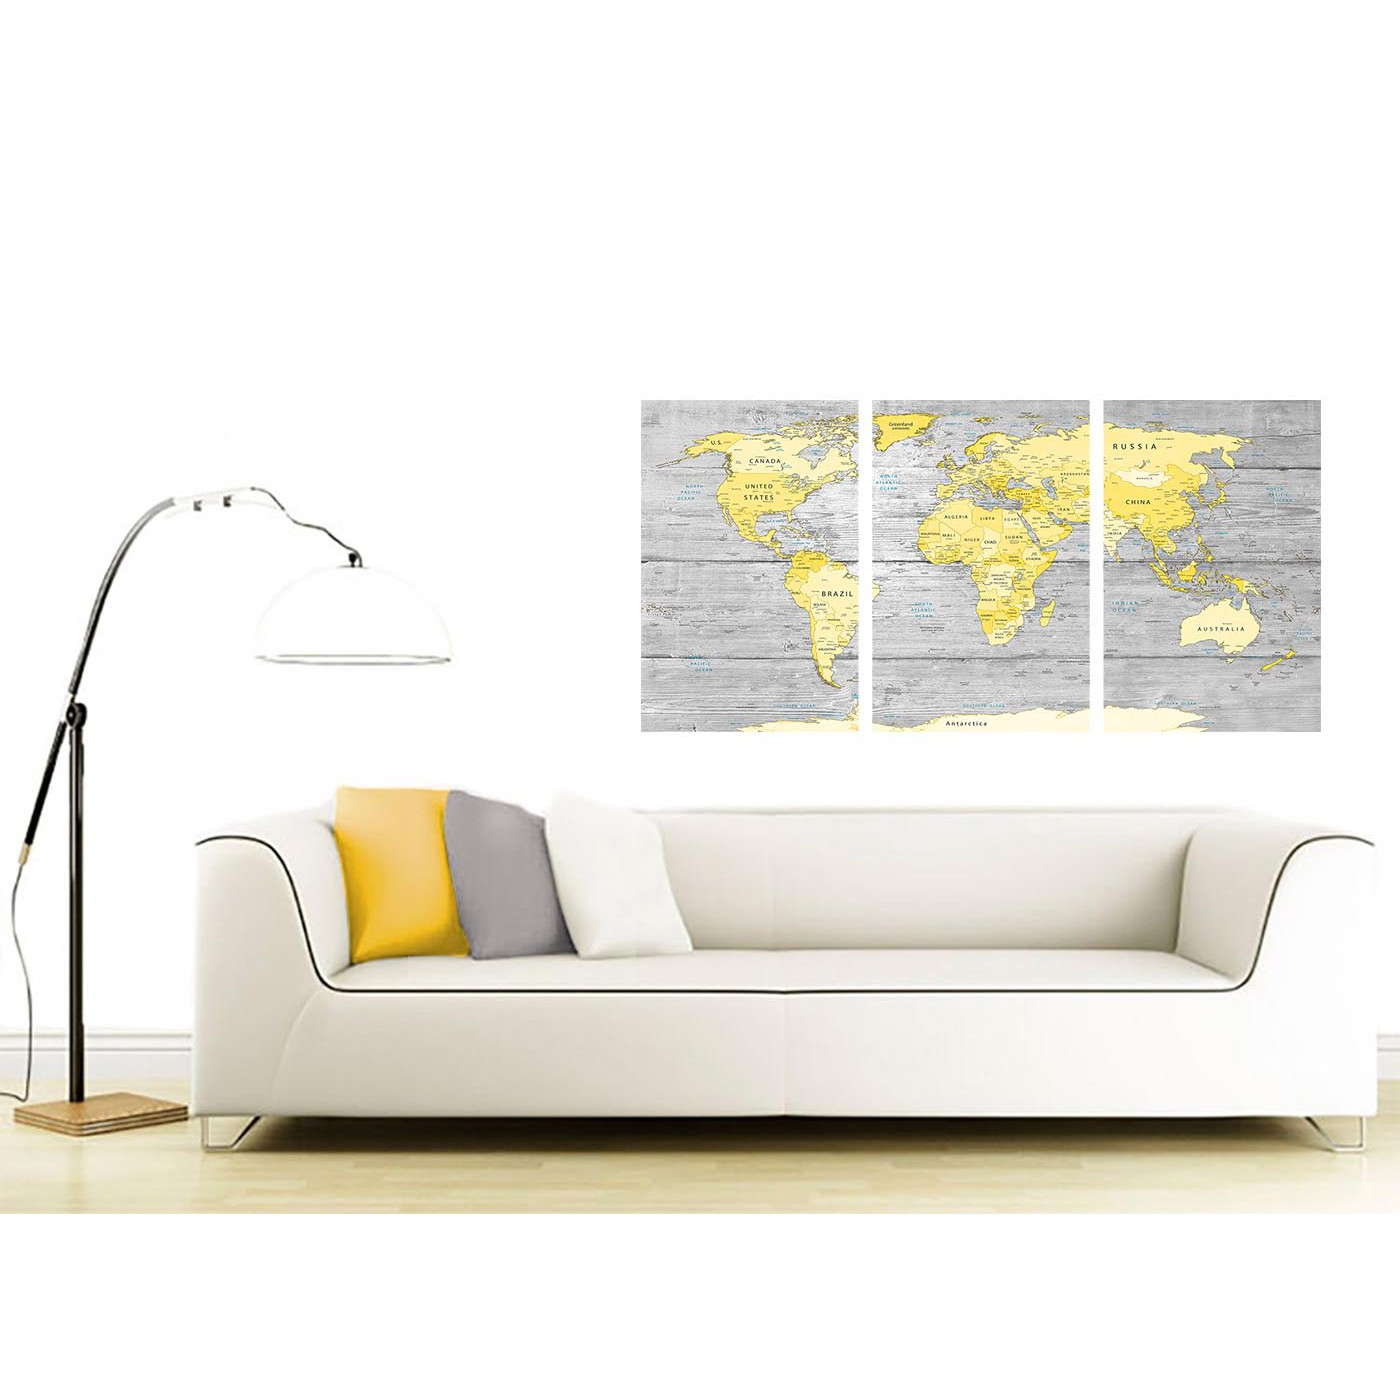 3 Panel Split Art World Map Canvas Print Triptych For: Large Yellow Grey Map Of World Atlas Canvas Wall Art Print